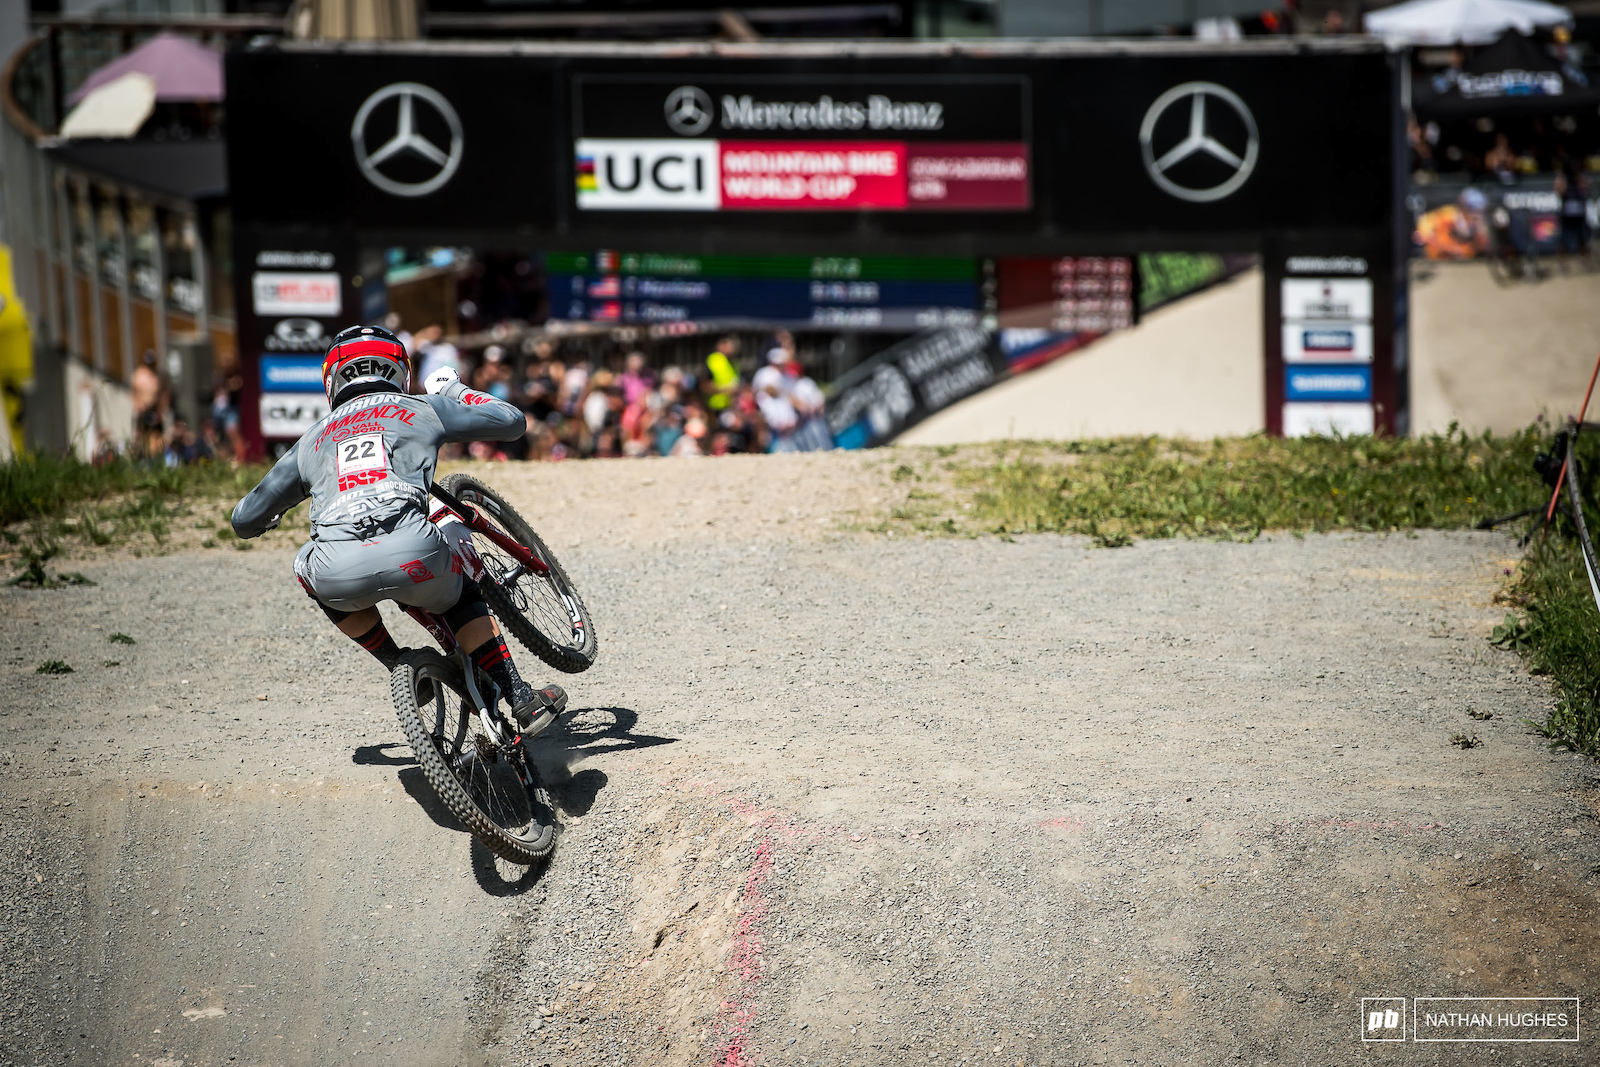 Most excellent to see Remi Thirion crushing his demons here in Leogang and riding to 15th place.